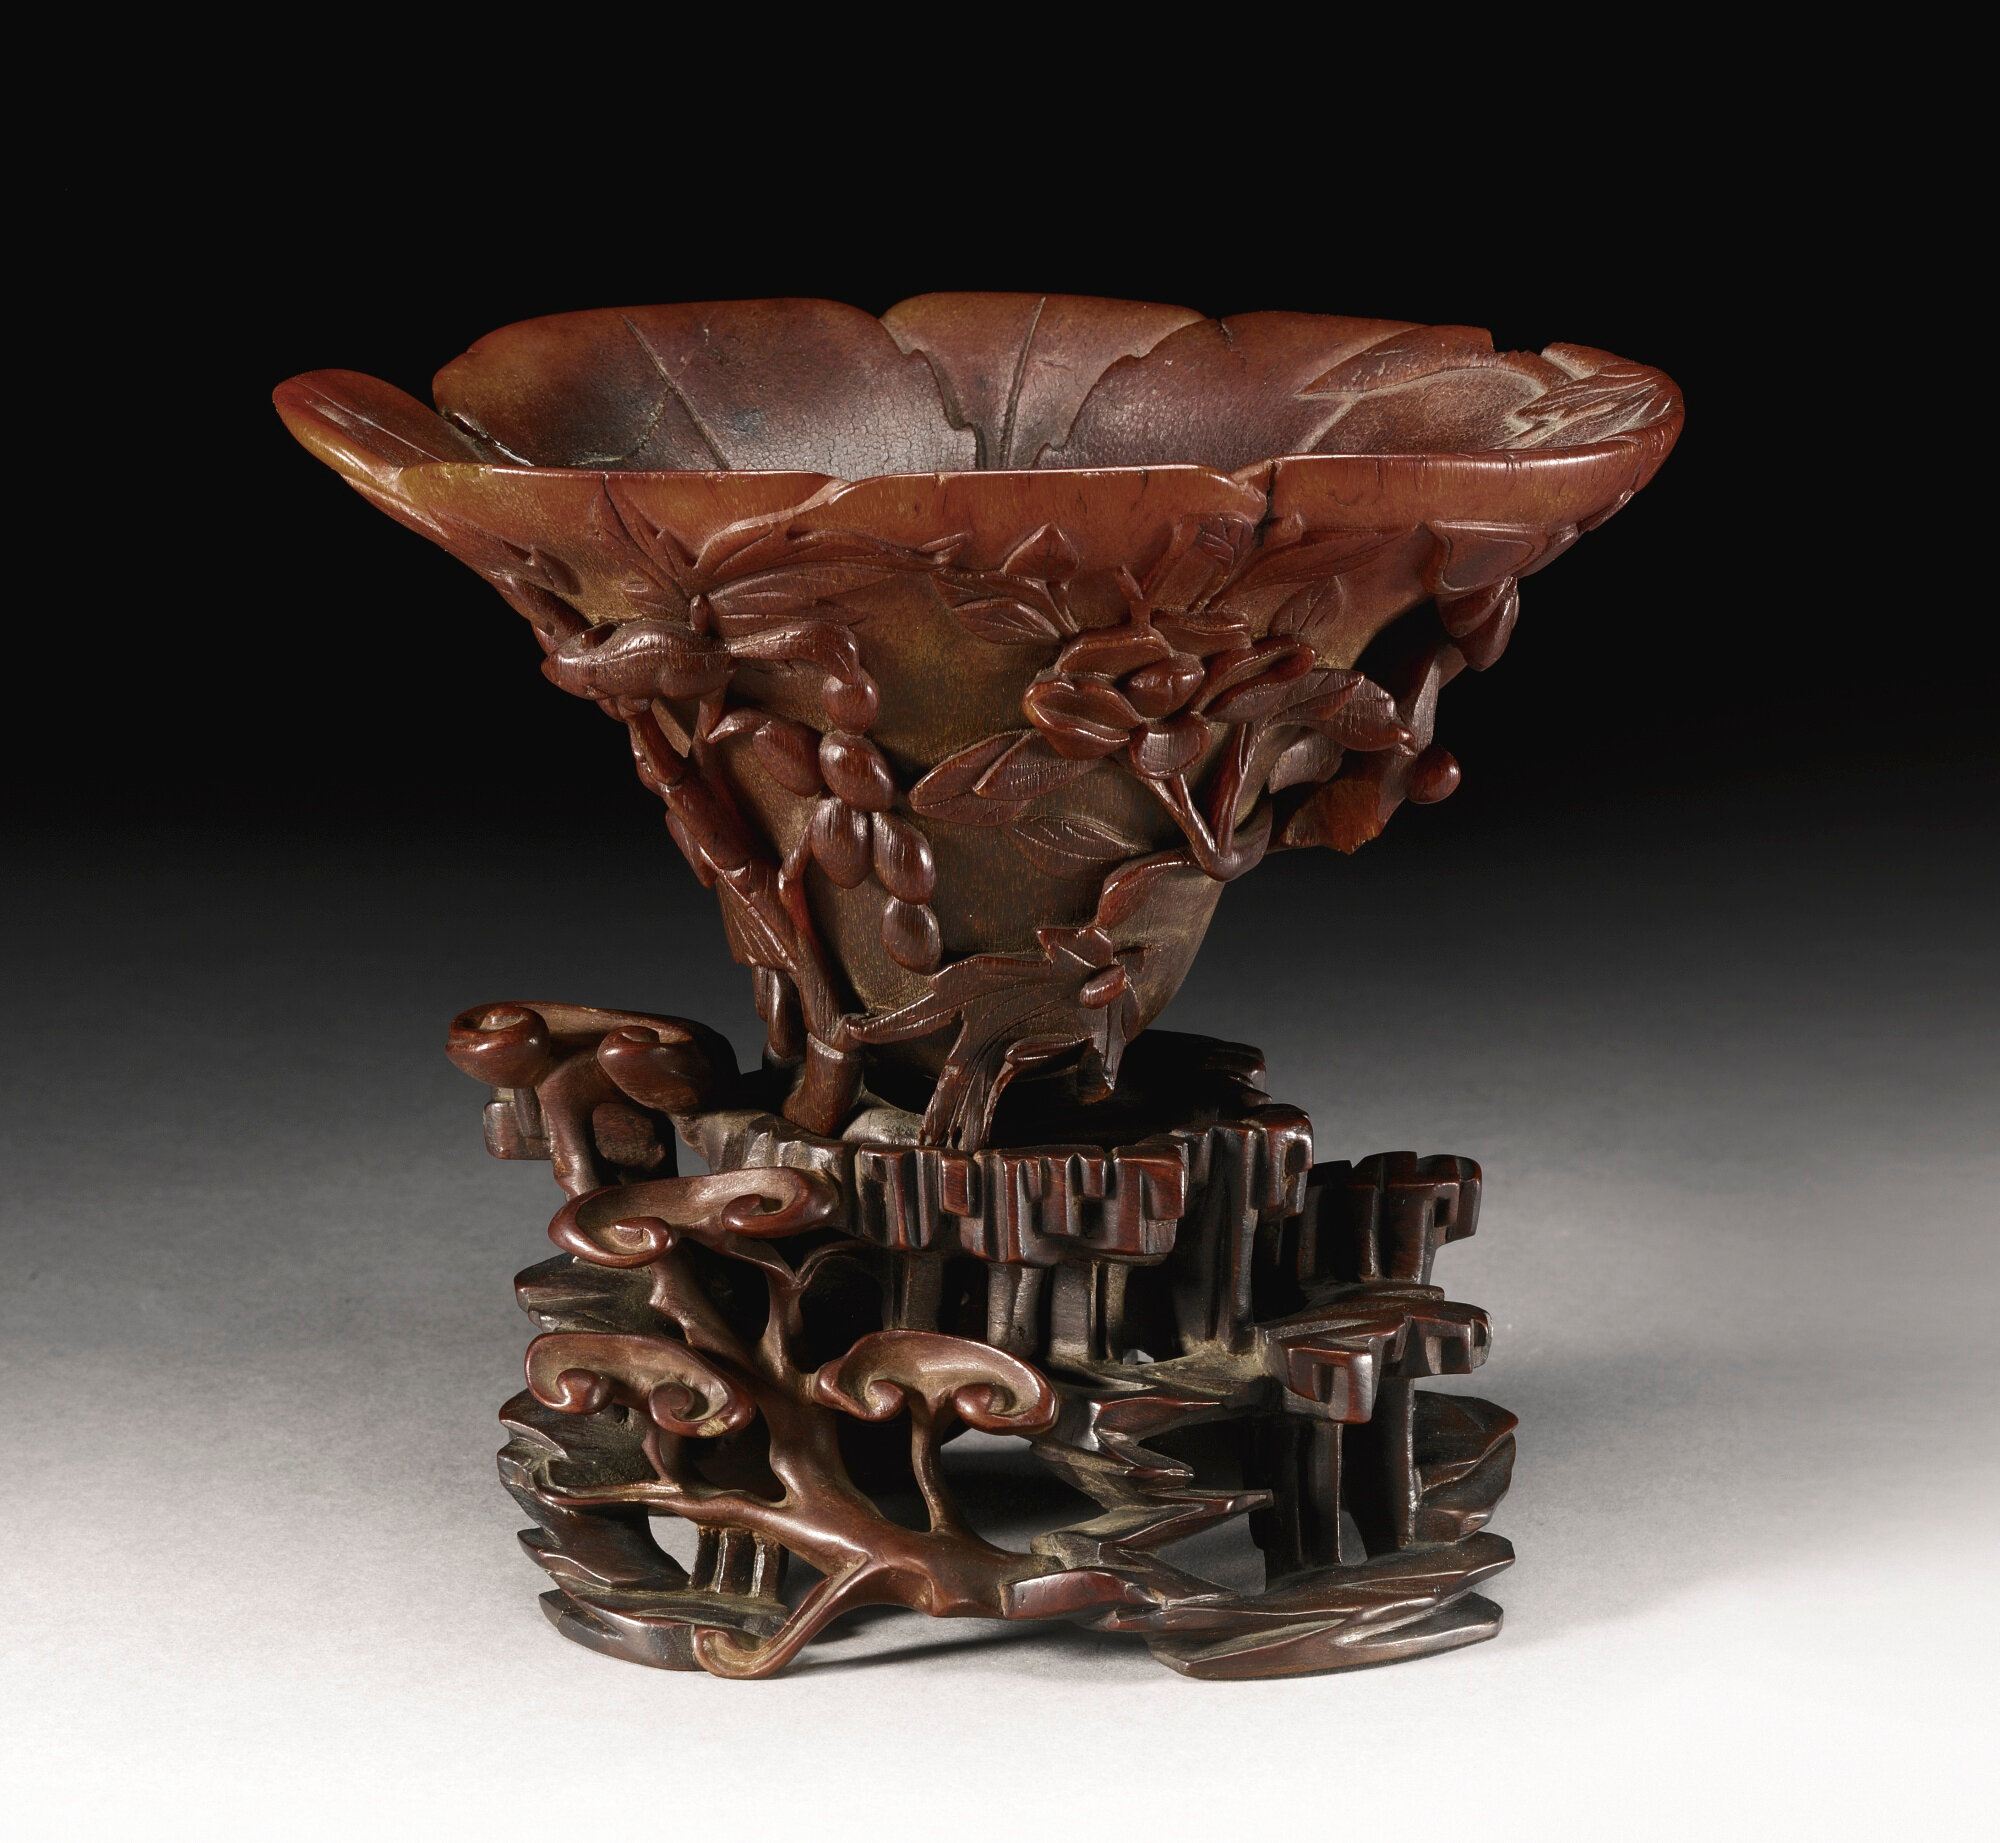 A rhinoceros horn 'Squirrel and grapevine' libation cup, Qing dynasty, 17th-18th century